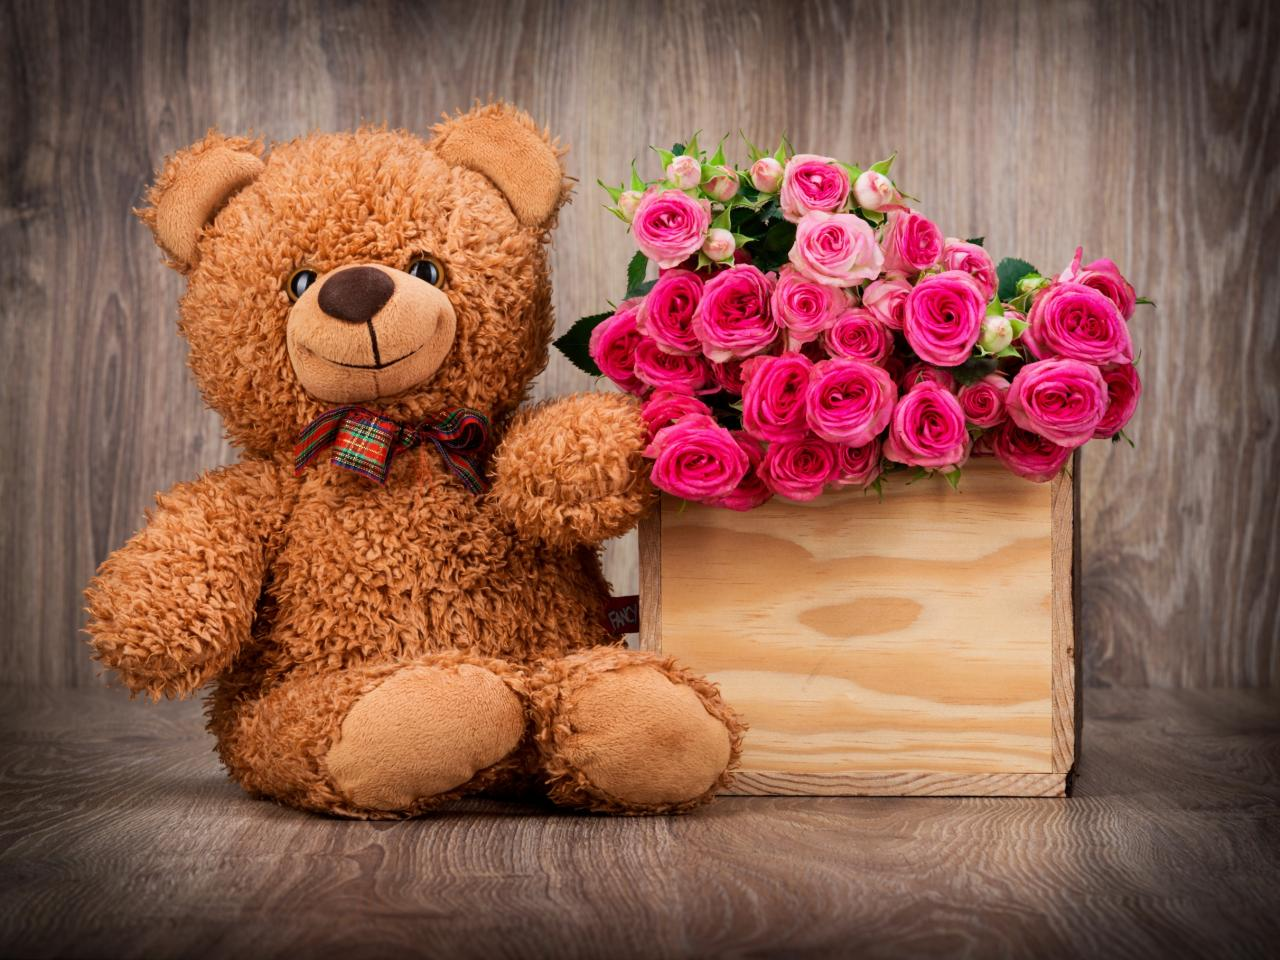 Cute teddy bear wallpaper with pink roses in box hd - Cute teddy bear pics hd download ...